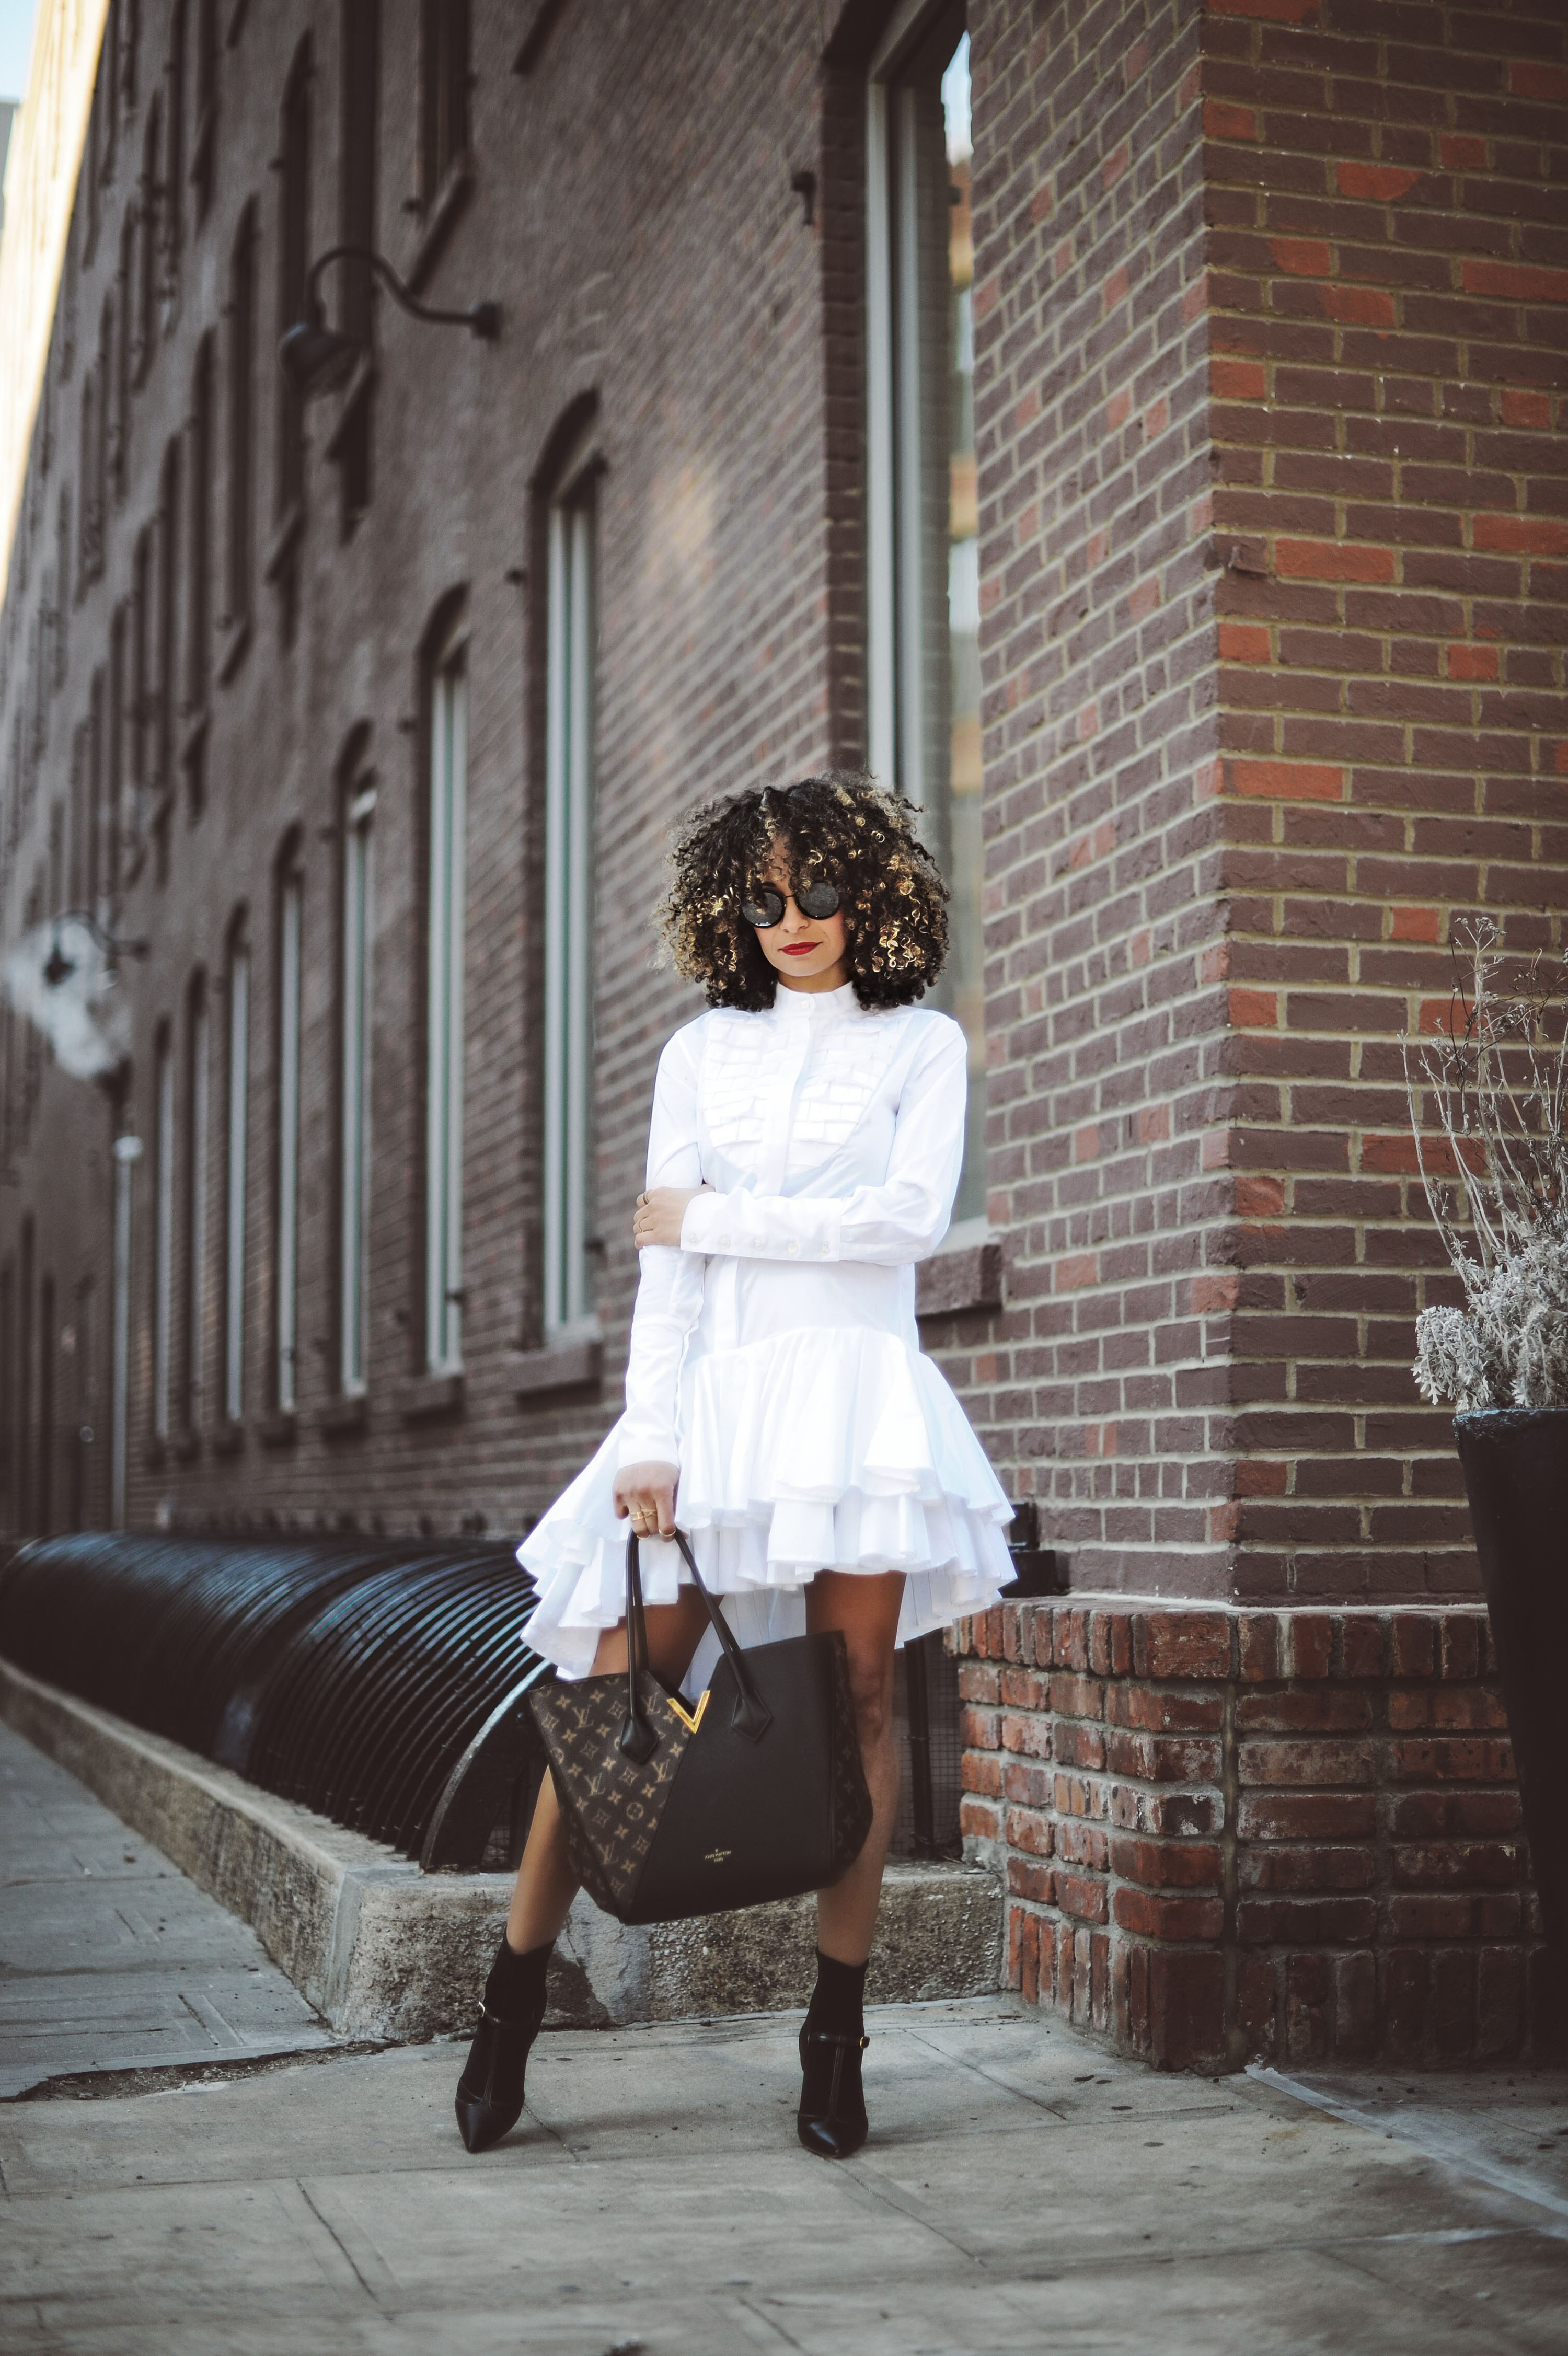 729c5daea67 Find Your Perfect LWD (Little White Dress) - Scout The City